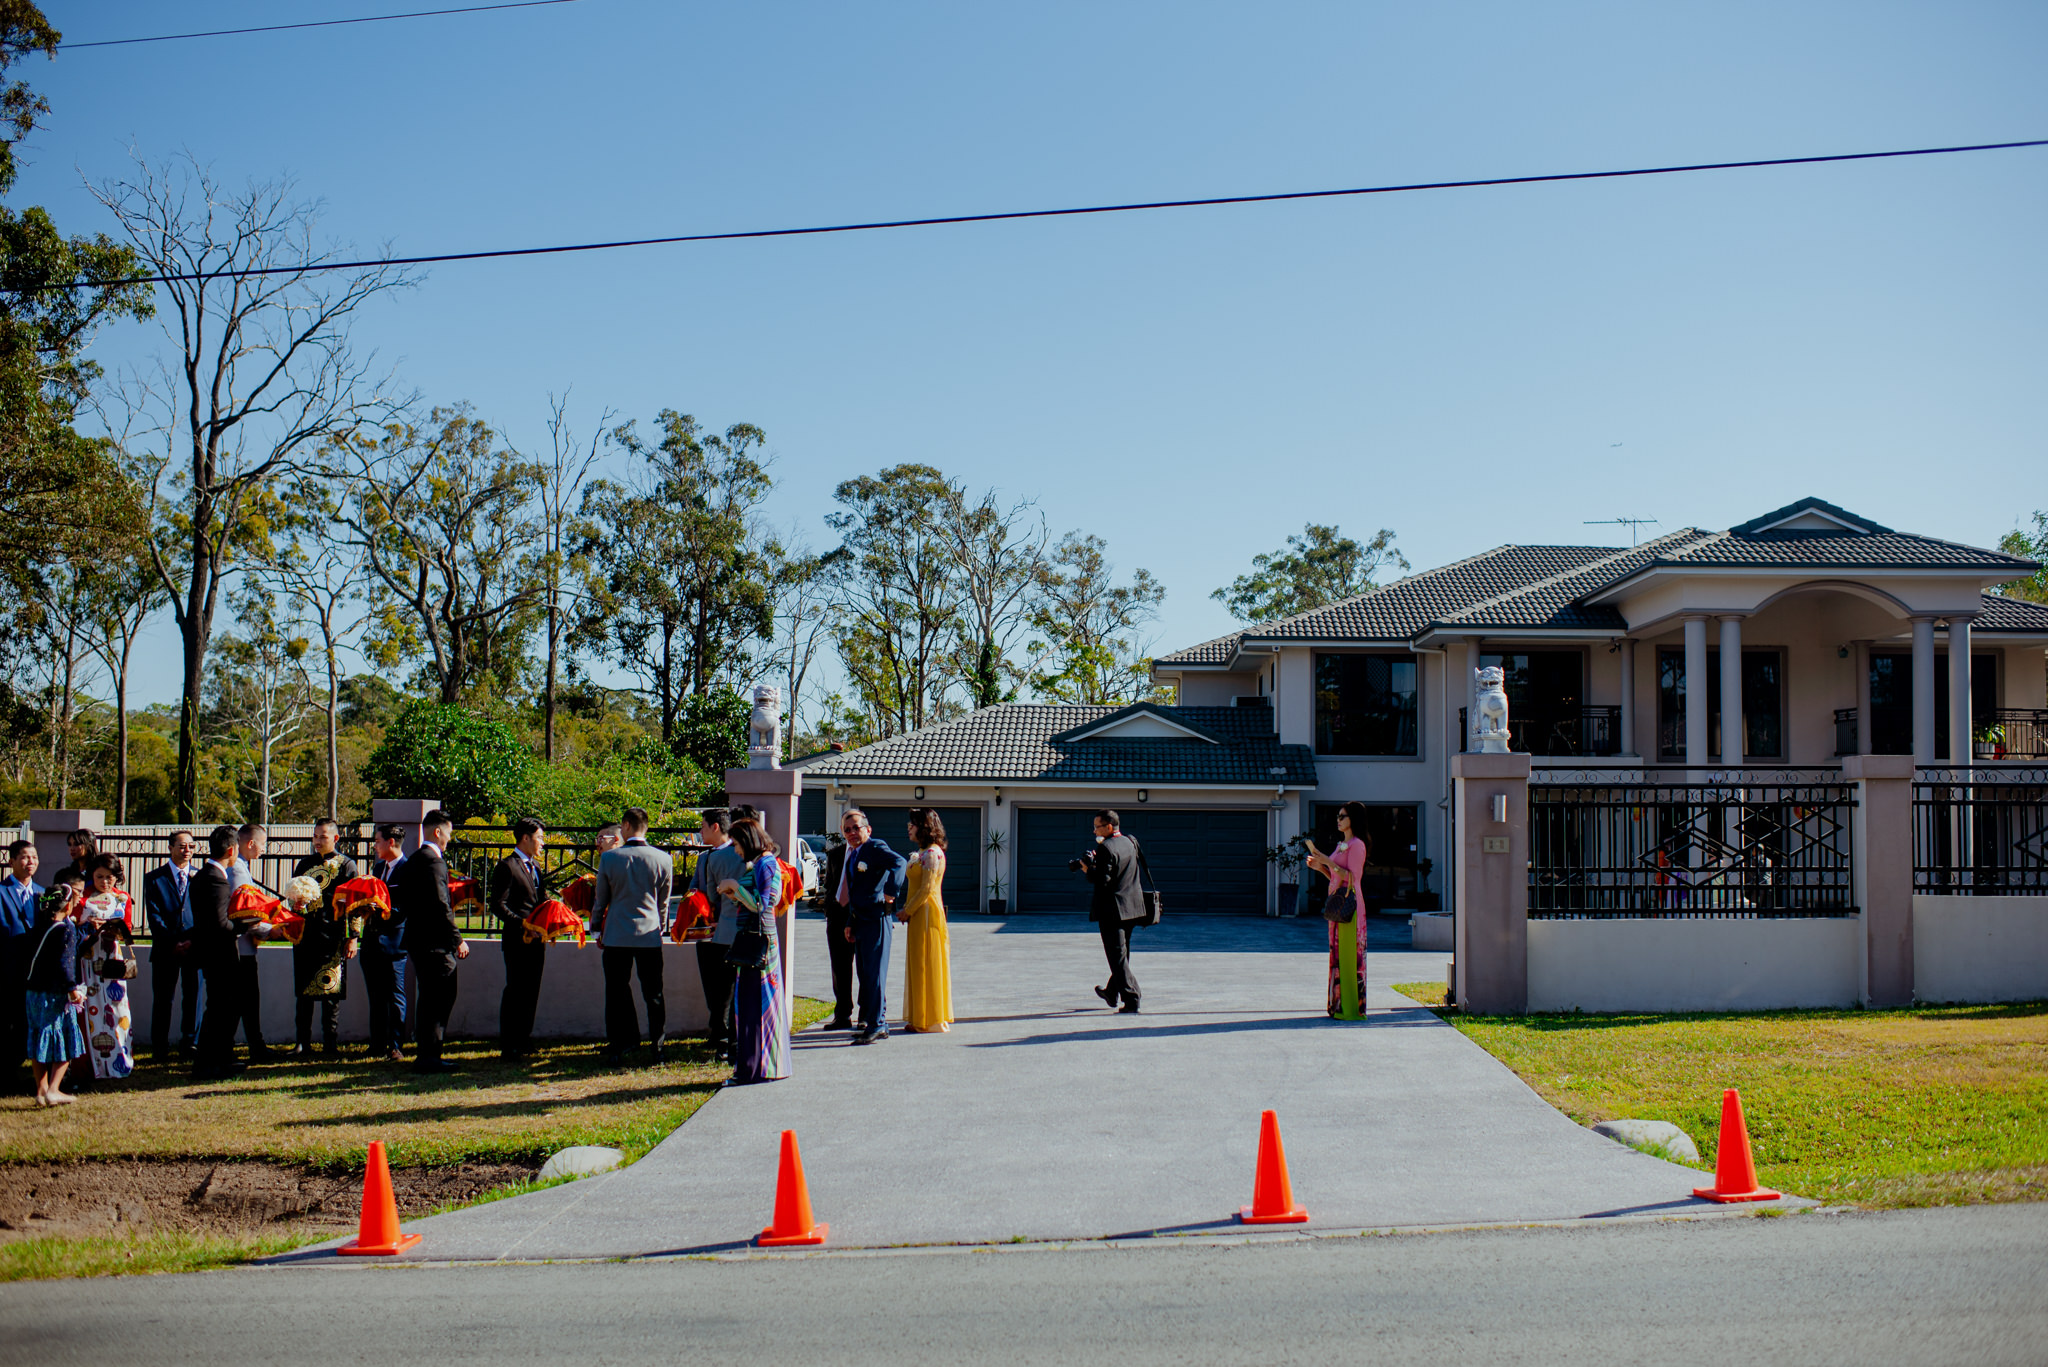 People in formal clothing line up in front of a large house with traffic cones in front